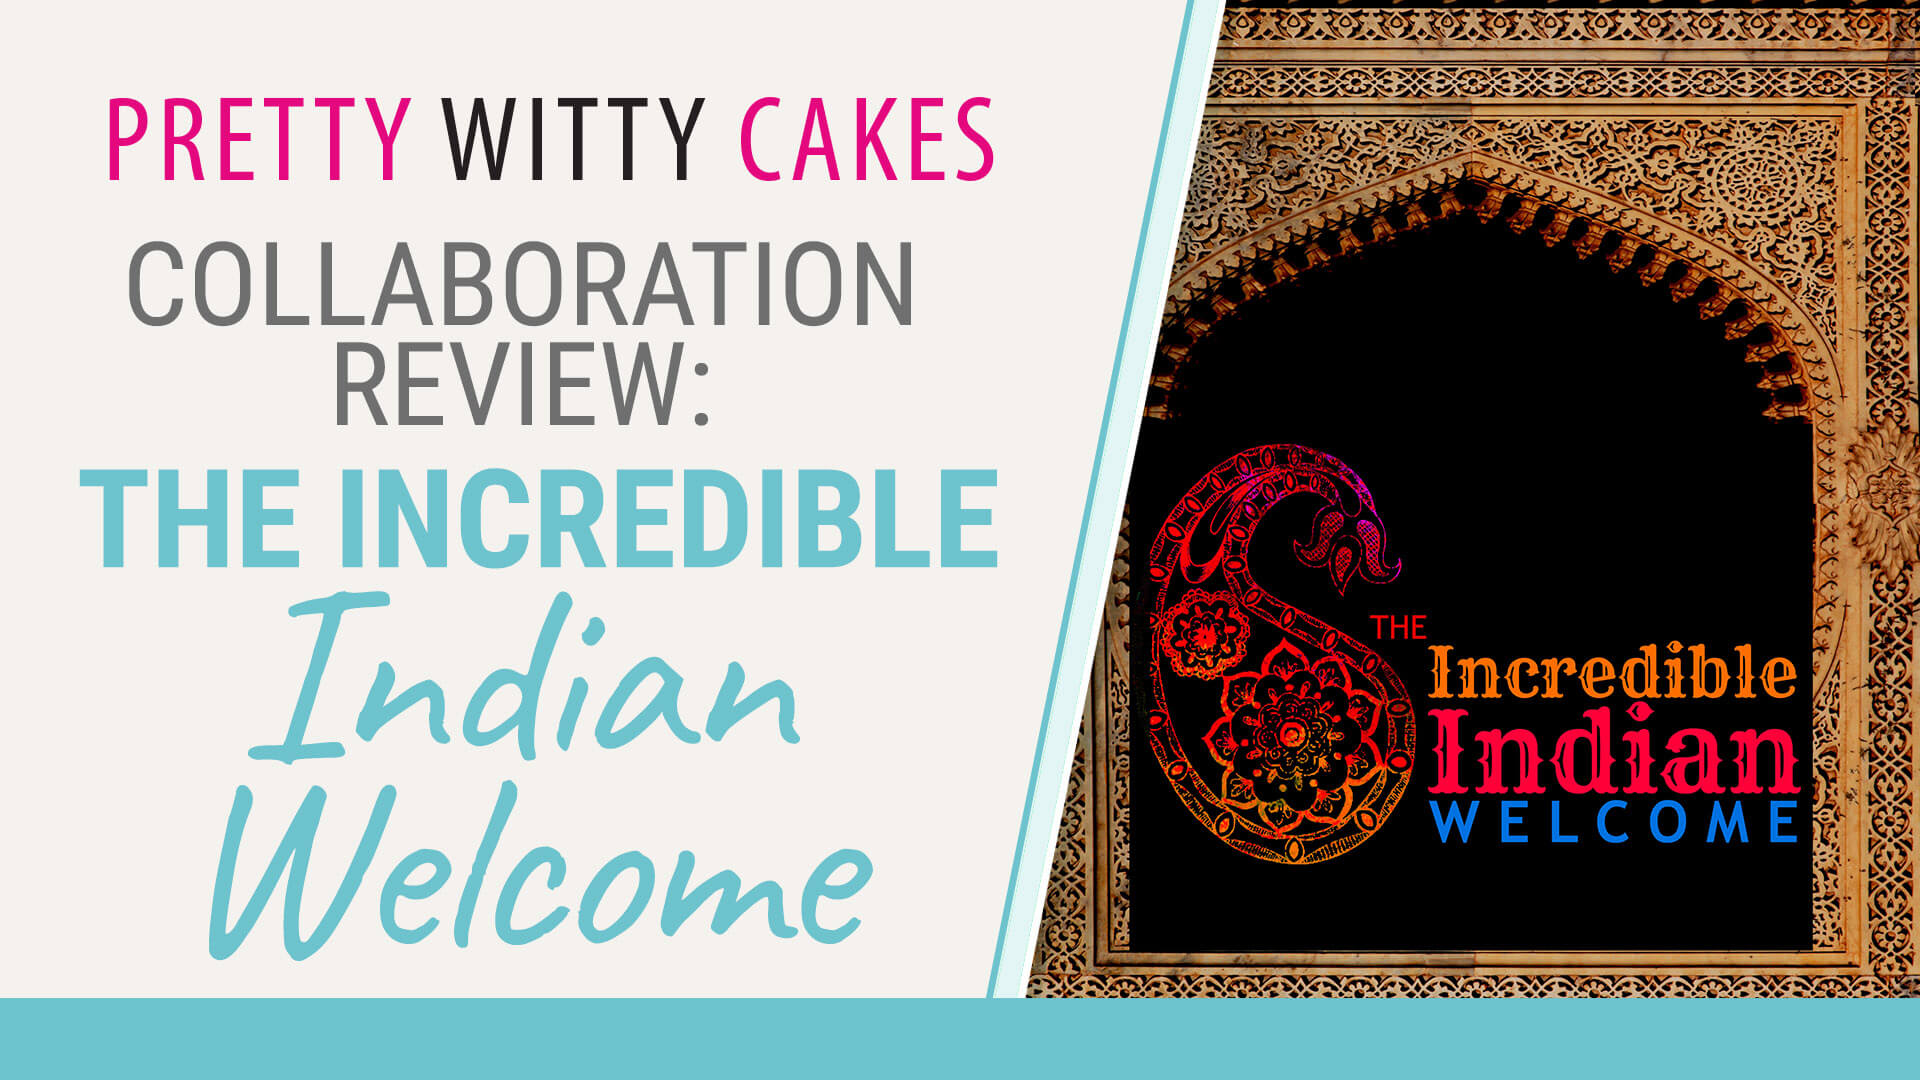 Collaboration Review: The Incredible Indian Welcome